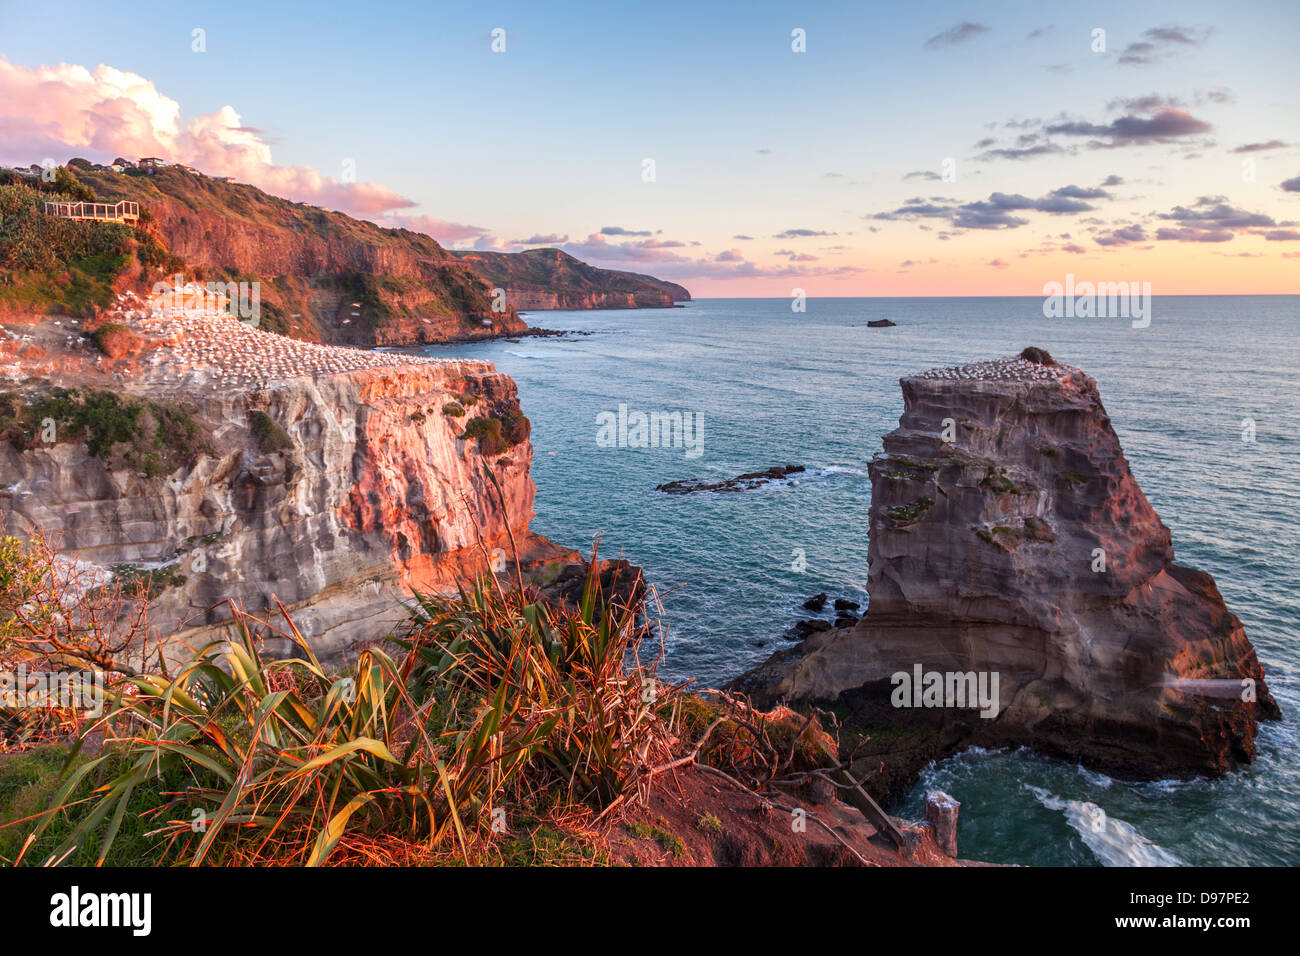 Muriwai Gannet Colony, Auckland, New Zealand. Please note motion blur on gannets in flight. - Stock Image